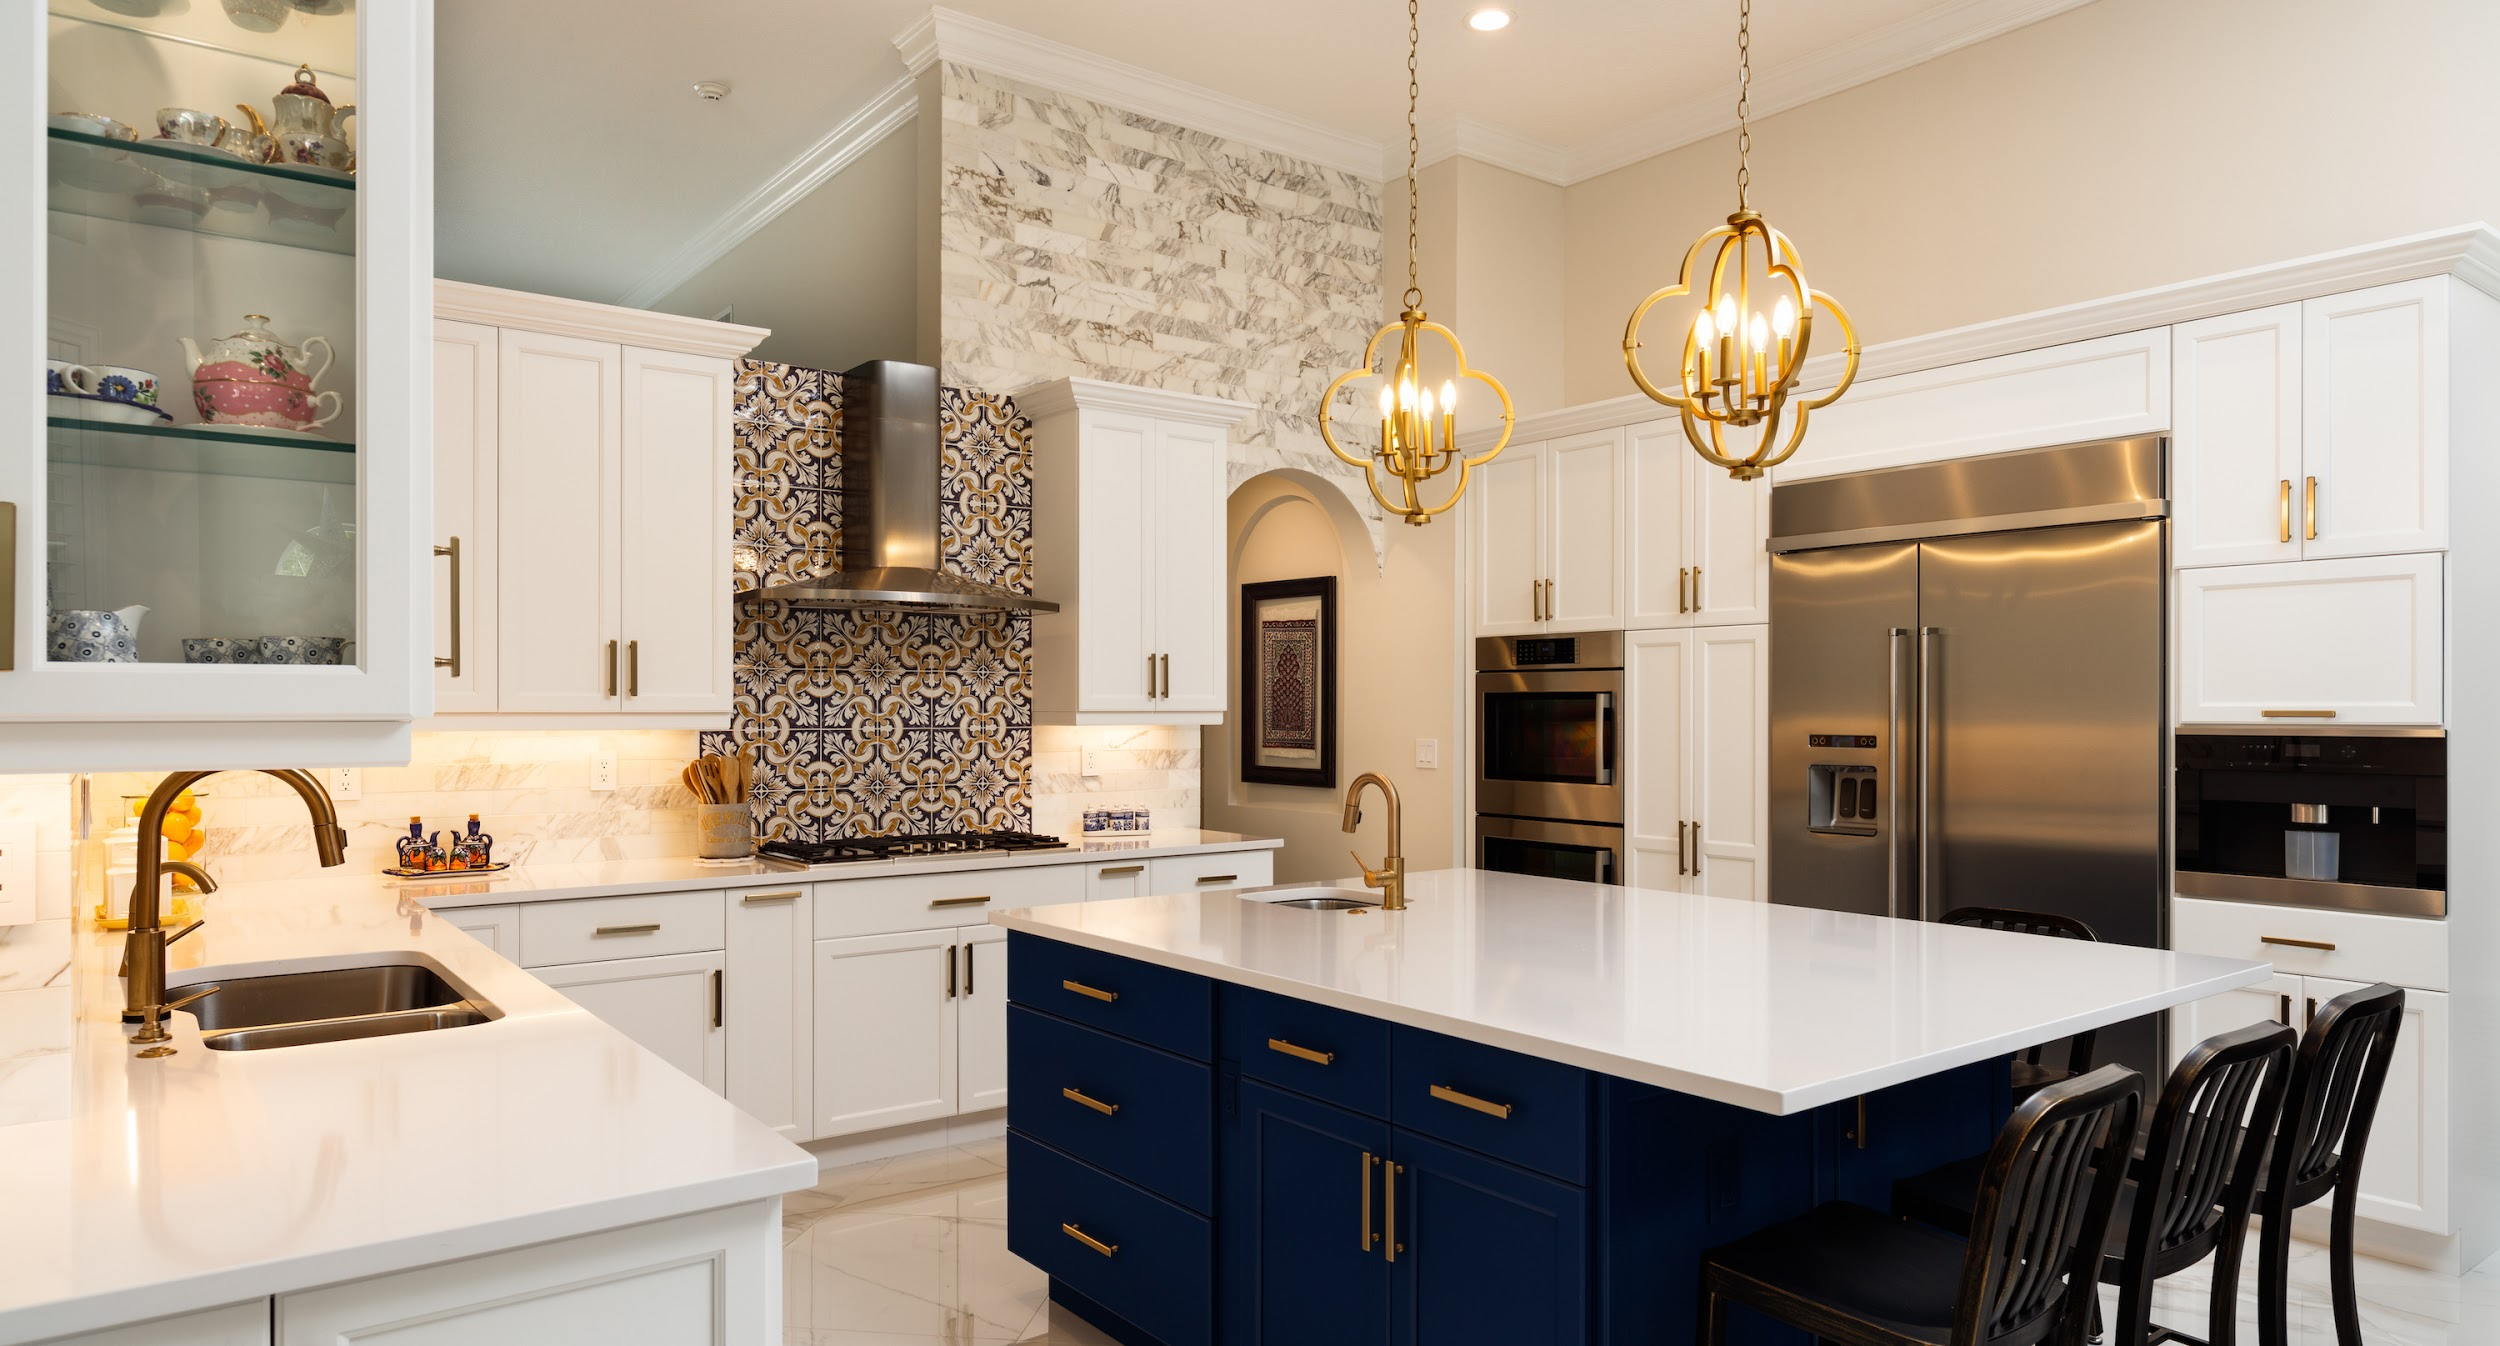 10 Most Popular Kitchen Design Ideas For 2019 Home Texture